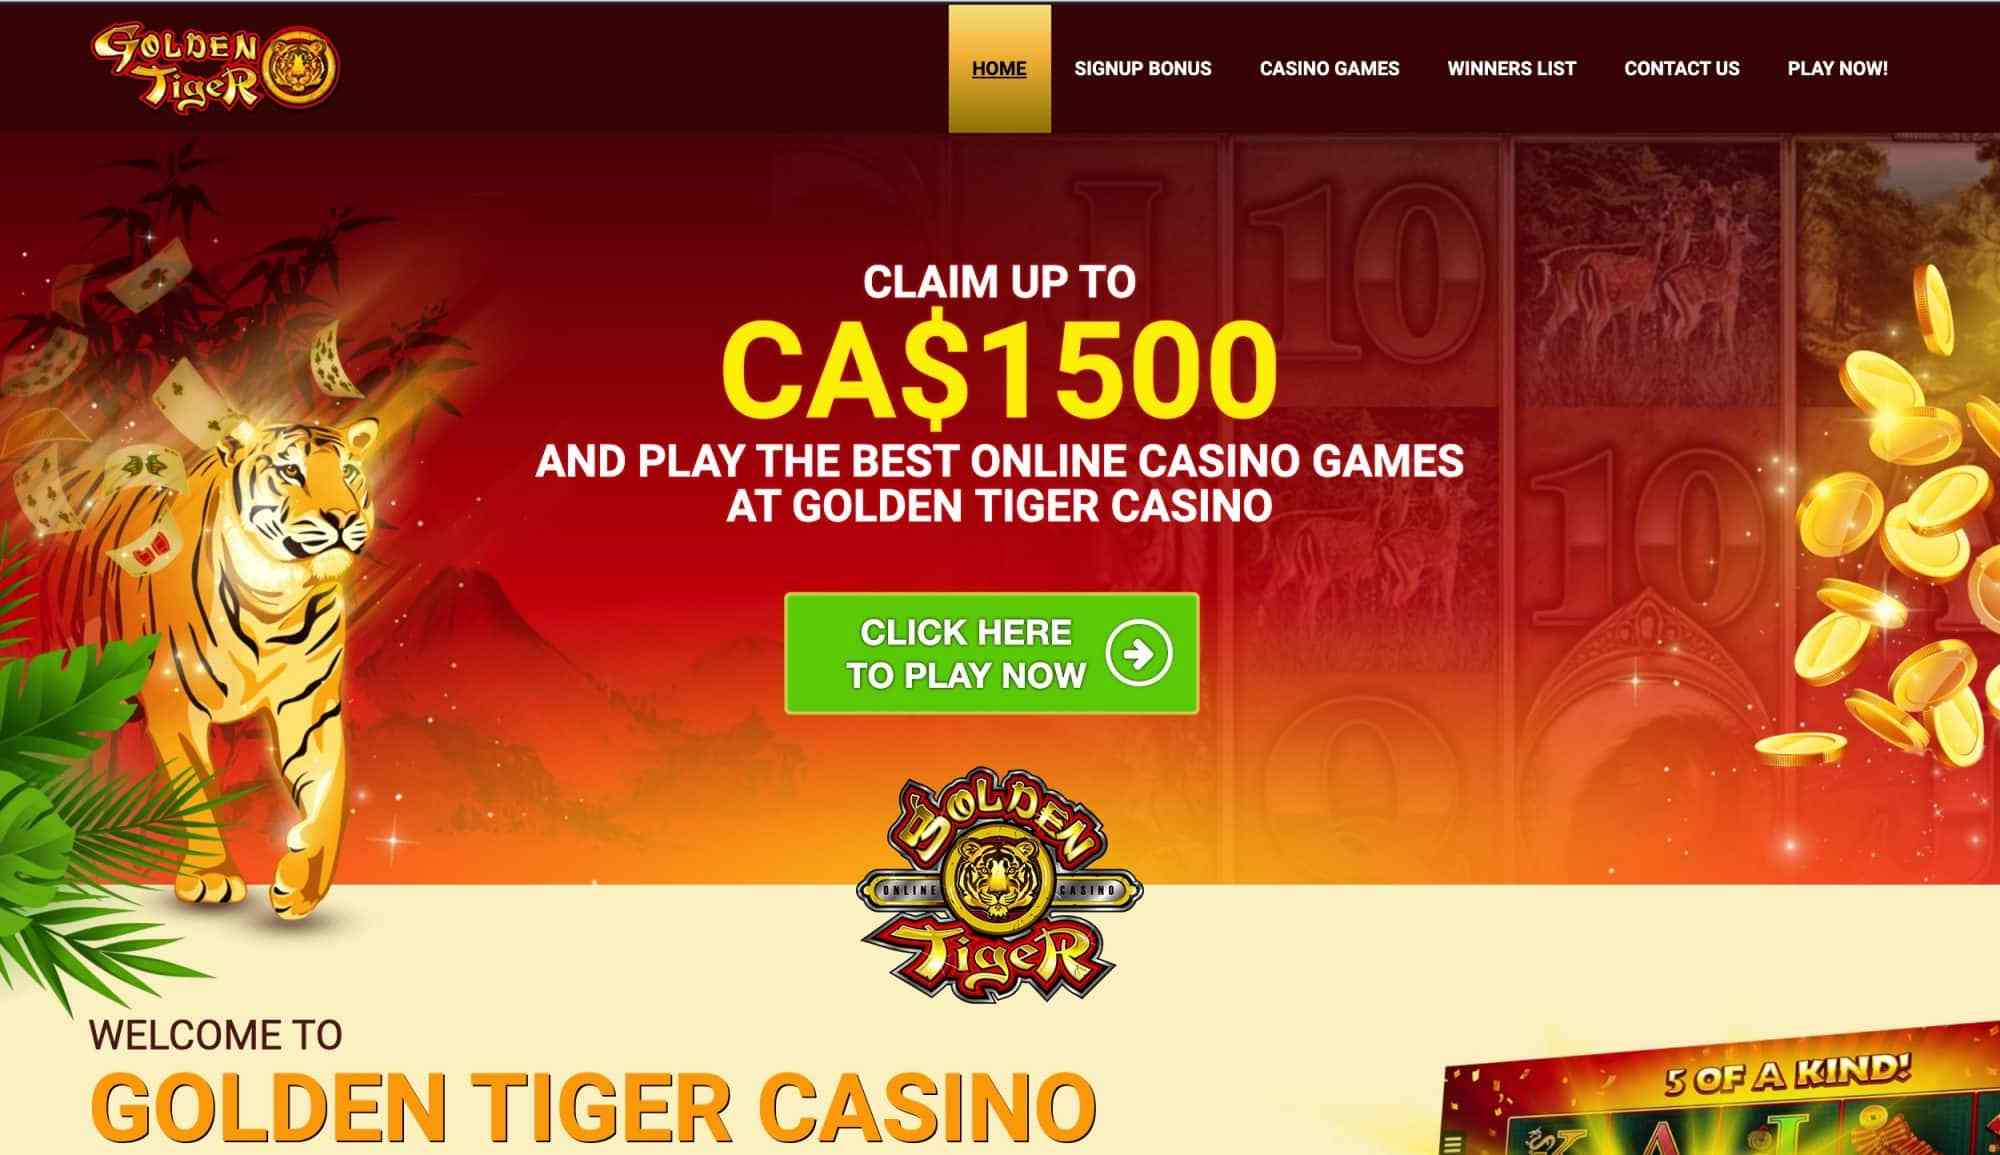 Golden Tiger Casino - Claim up to $1500 in free bonuses!